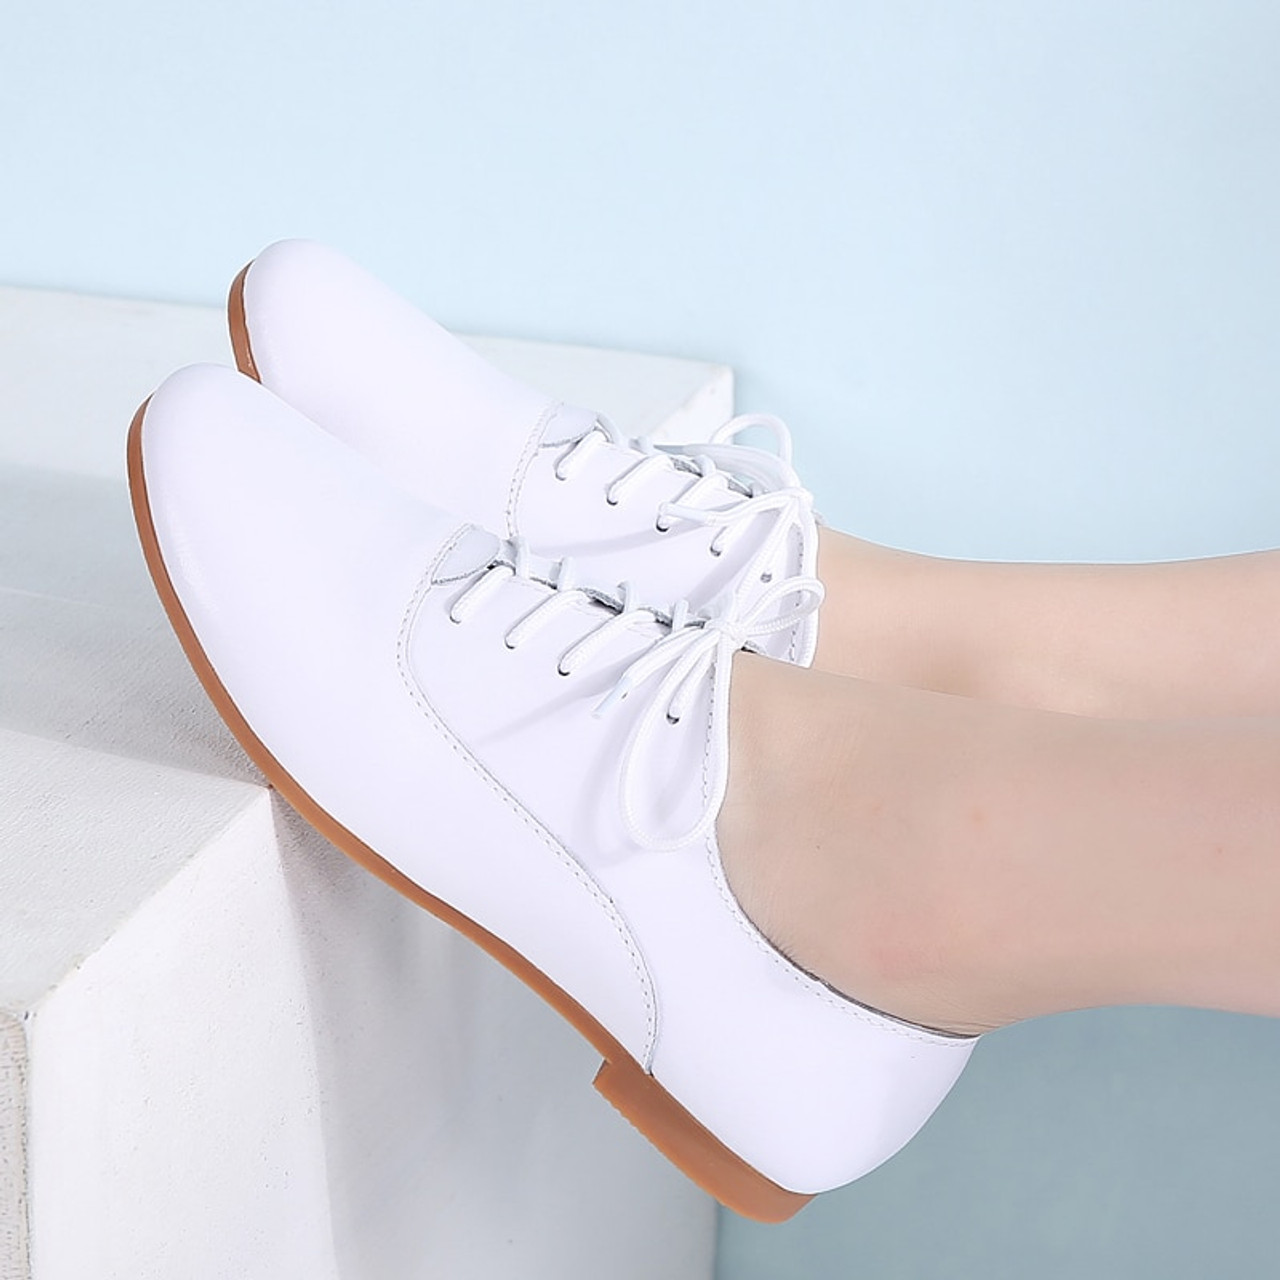 6f3648a4081 STQ 2018 Spring women oxford shoes ballerina flats shoes women genuine  leather shoes moccasins lace up loafers white shoes 051